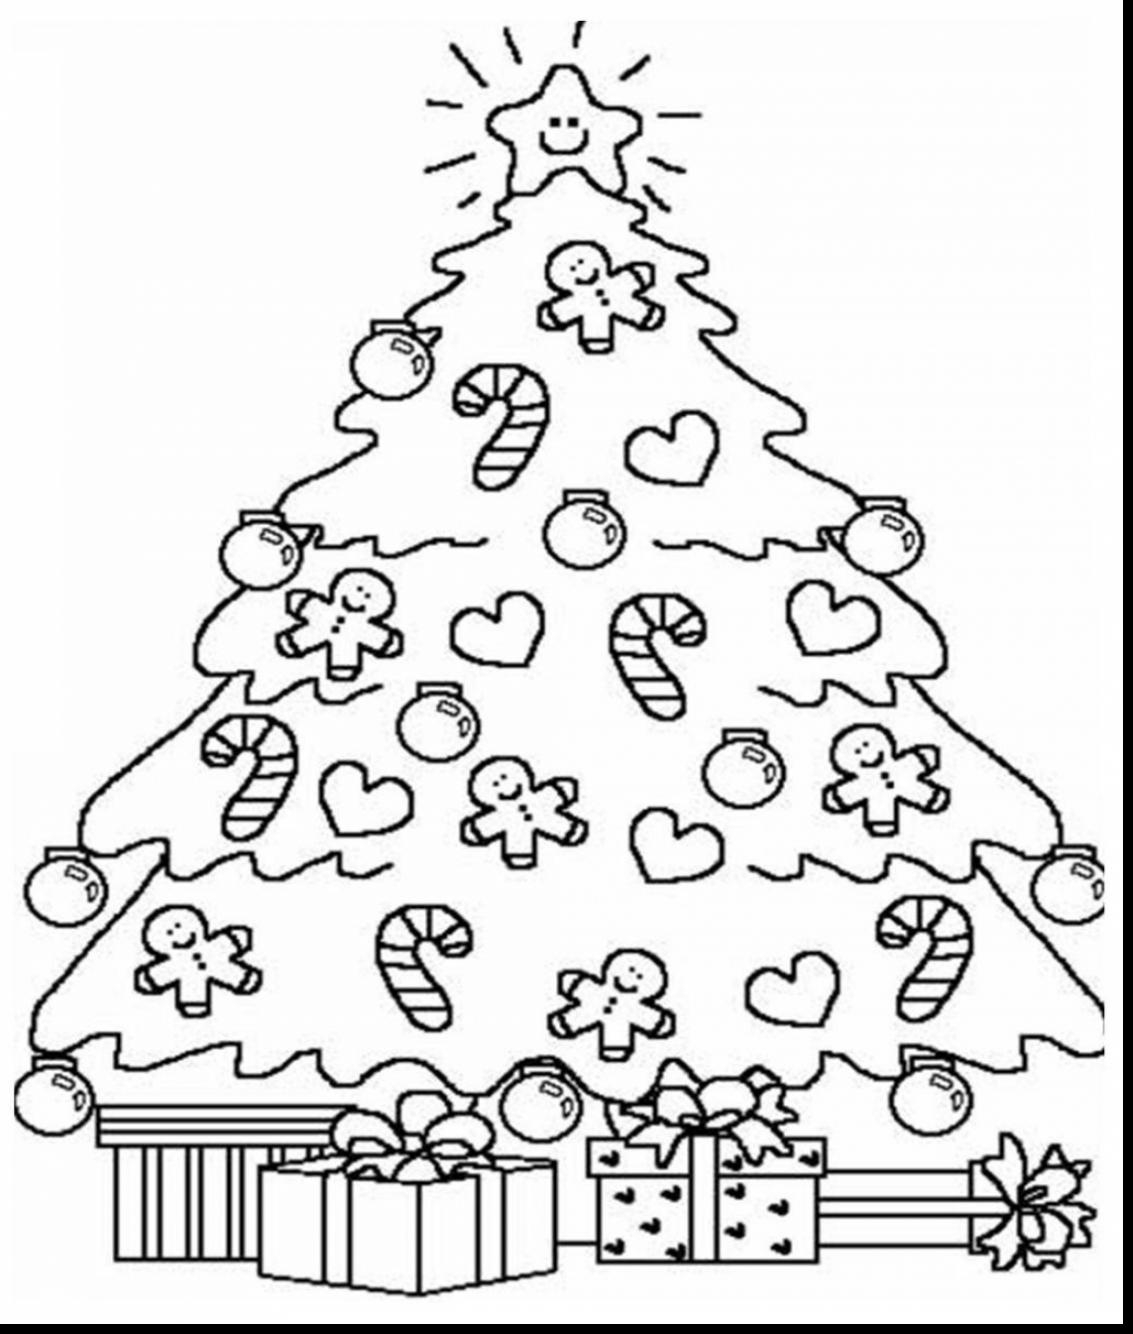 1133x1334 Christmas Tree Coloring Pages Adults To Print Coloring